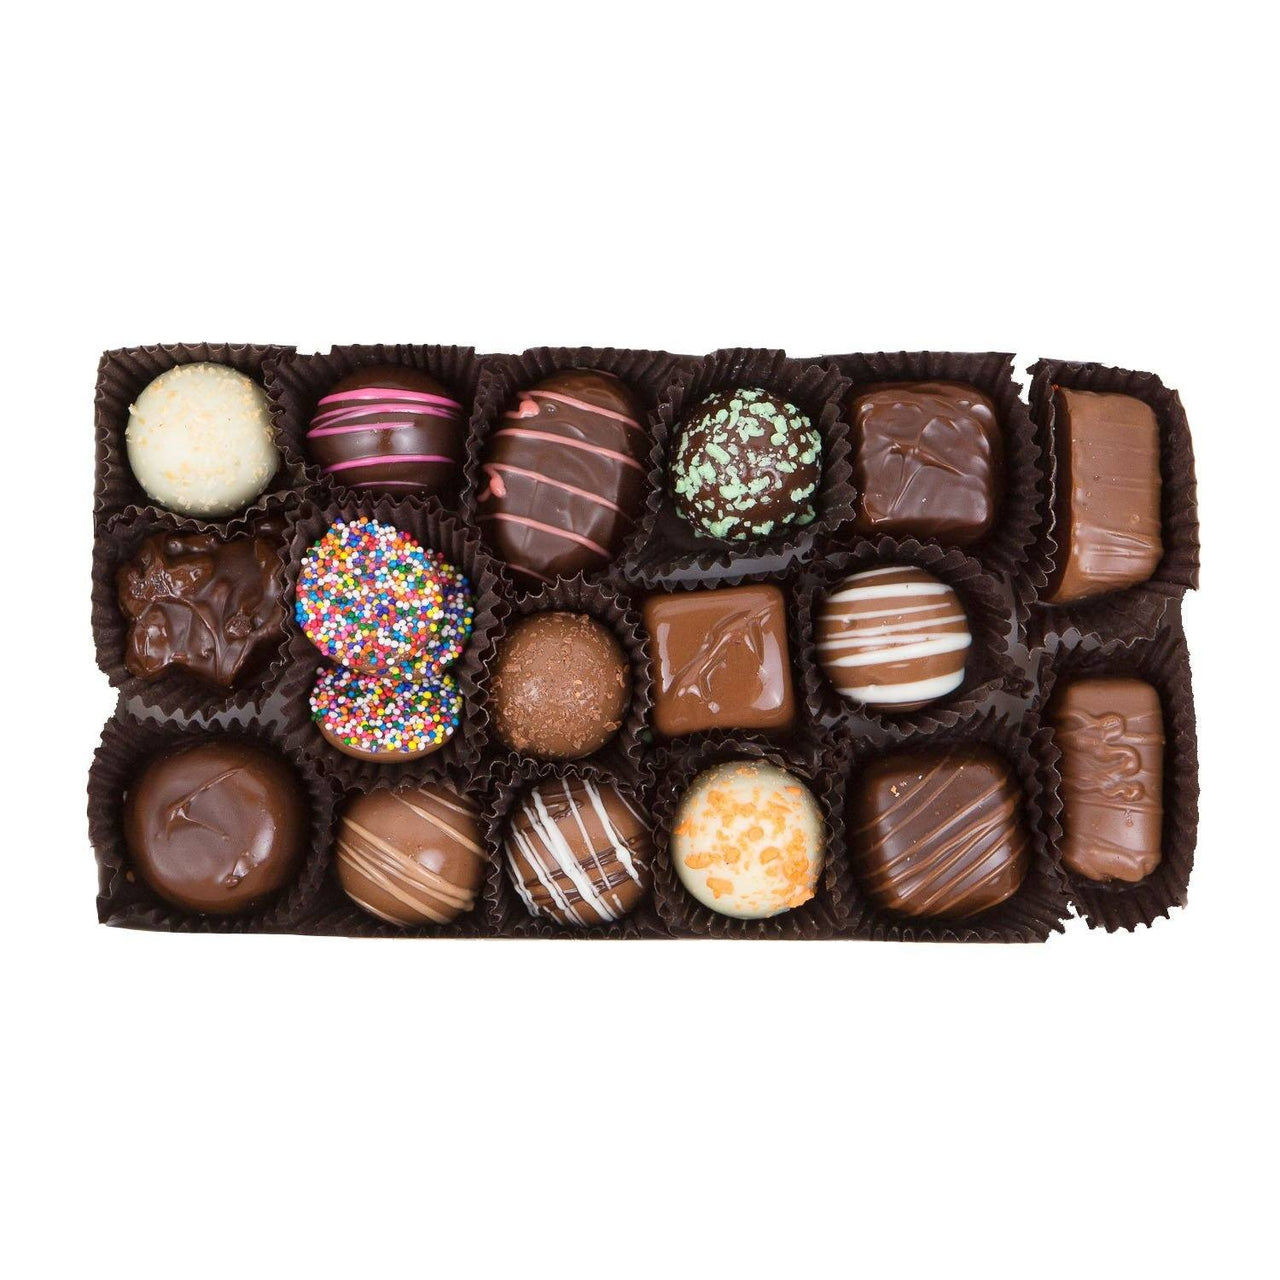 Gifts for Kids 2019 - Chocolate Assortment Gift Box - Jackie's Chocolate (4336367435891)